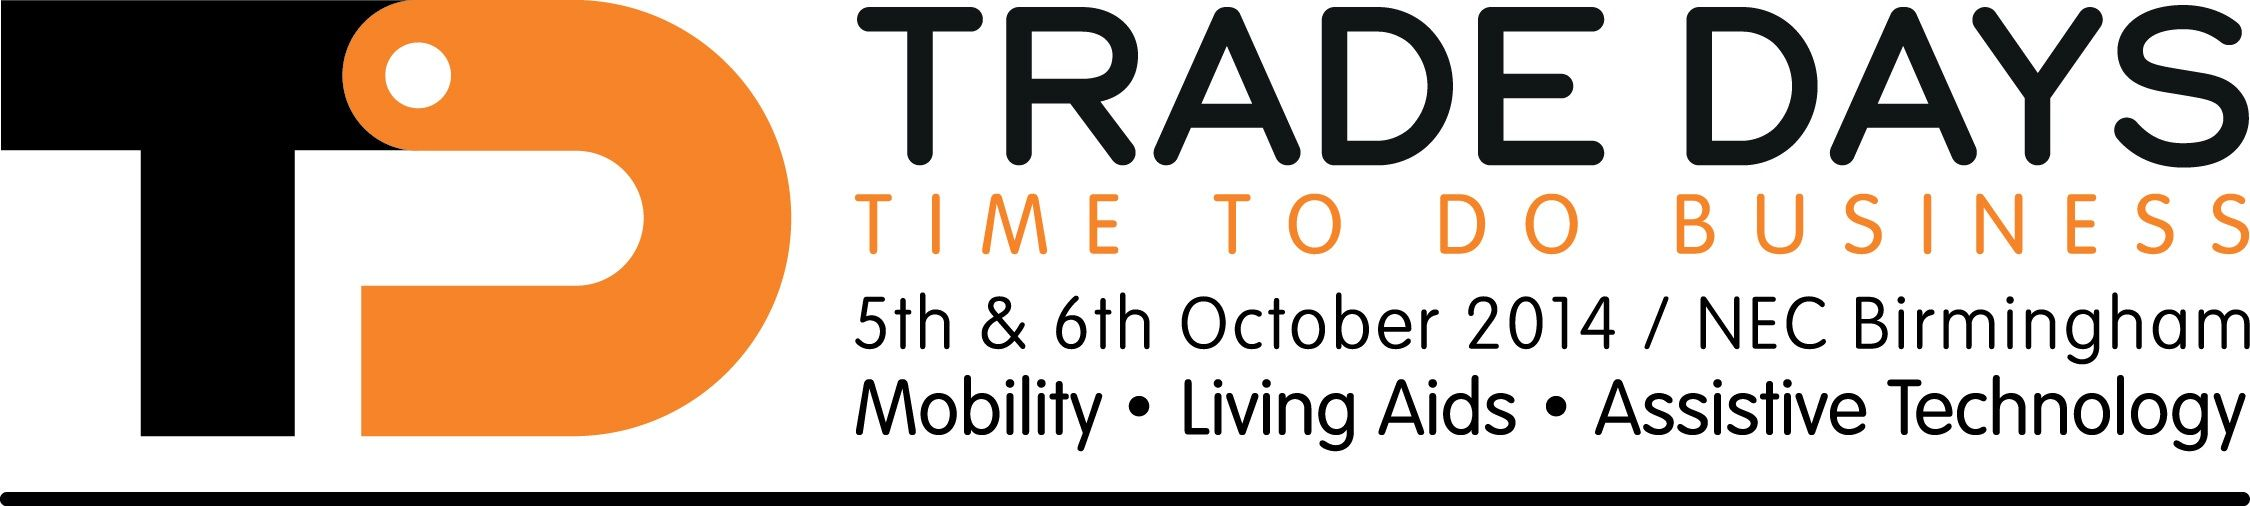 Trade Days logo with strapline